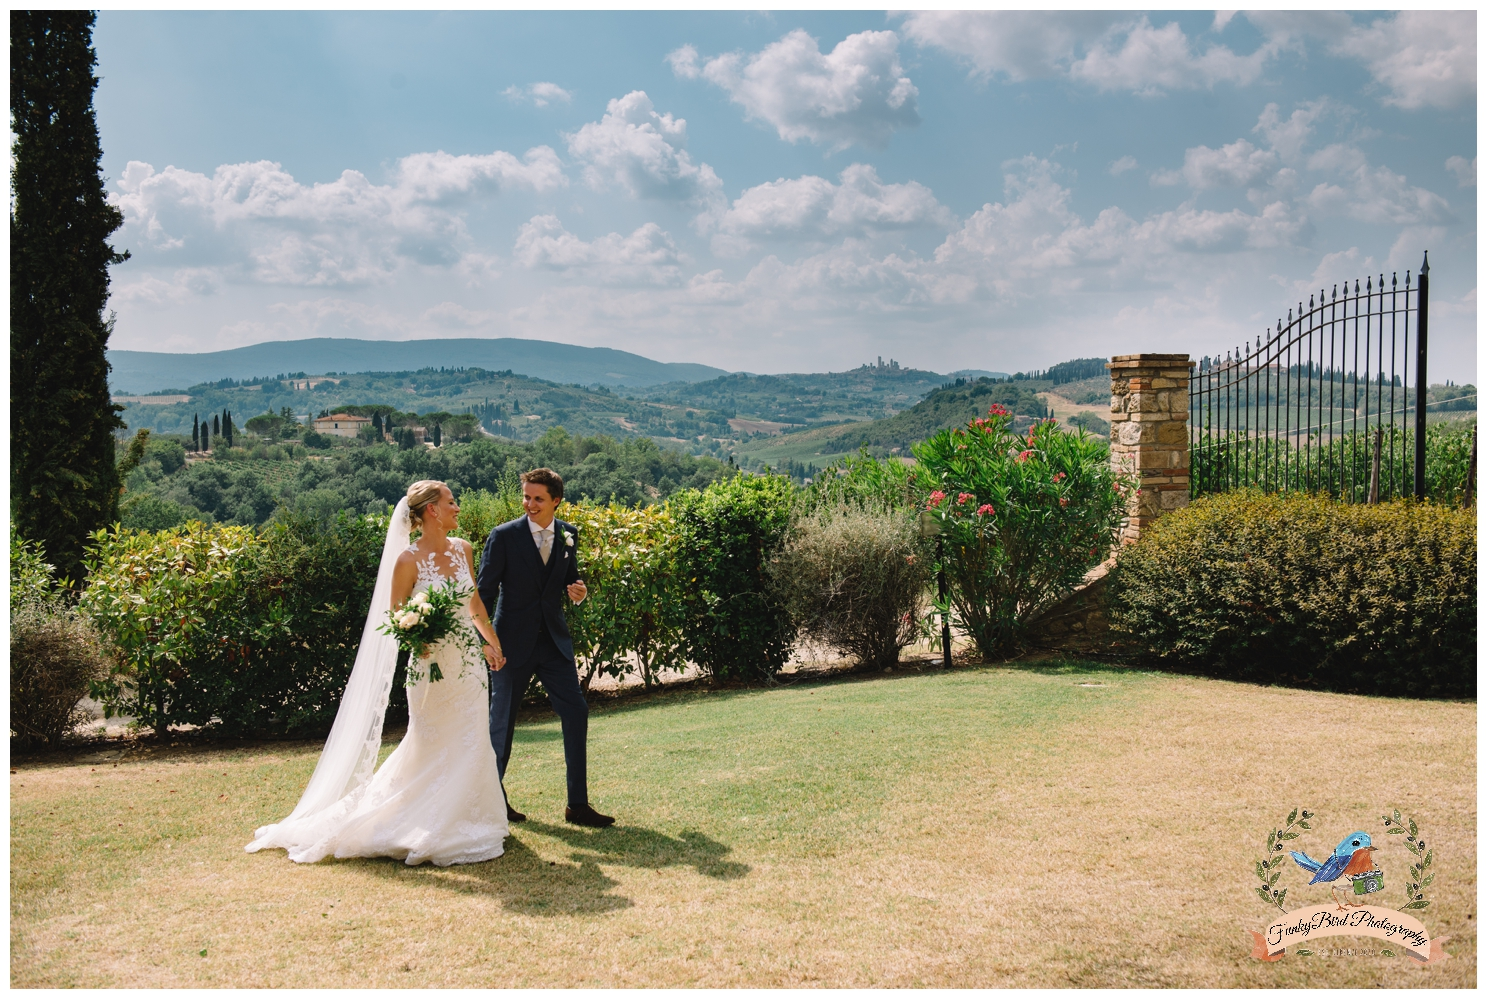 Wedding Photographer in Tuscany, Wedding Photographer in Florence, Wedding Photographer Siena, Italian Wedding Photographer, Wedding in Tuscany, Wedding in Florence, Wedding in Italy, Destination Wedding Photographer, Wedding Planner Tuscany, Wedding Venue Tuscany, San Gimignano Wedding